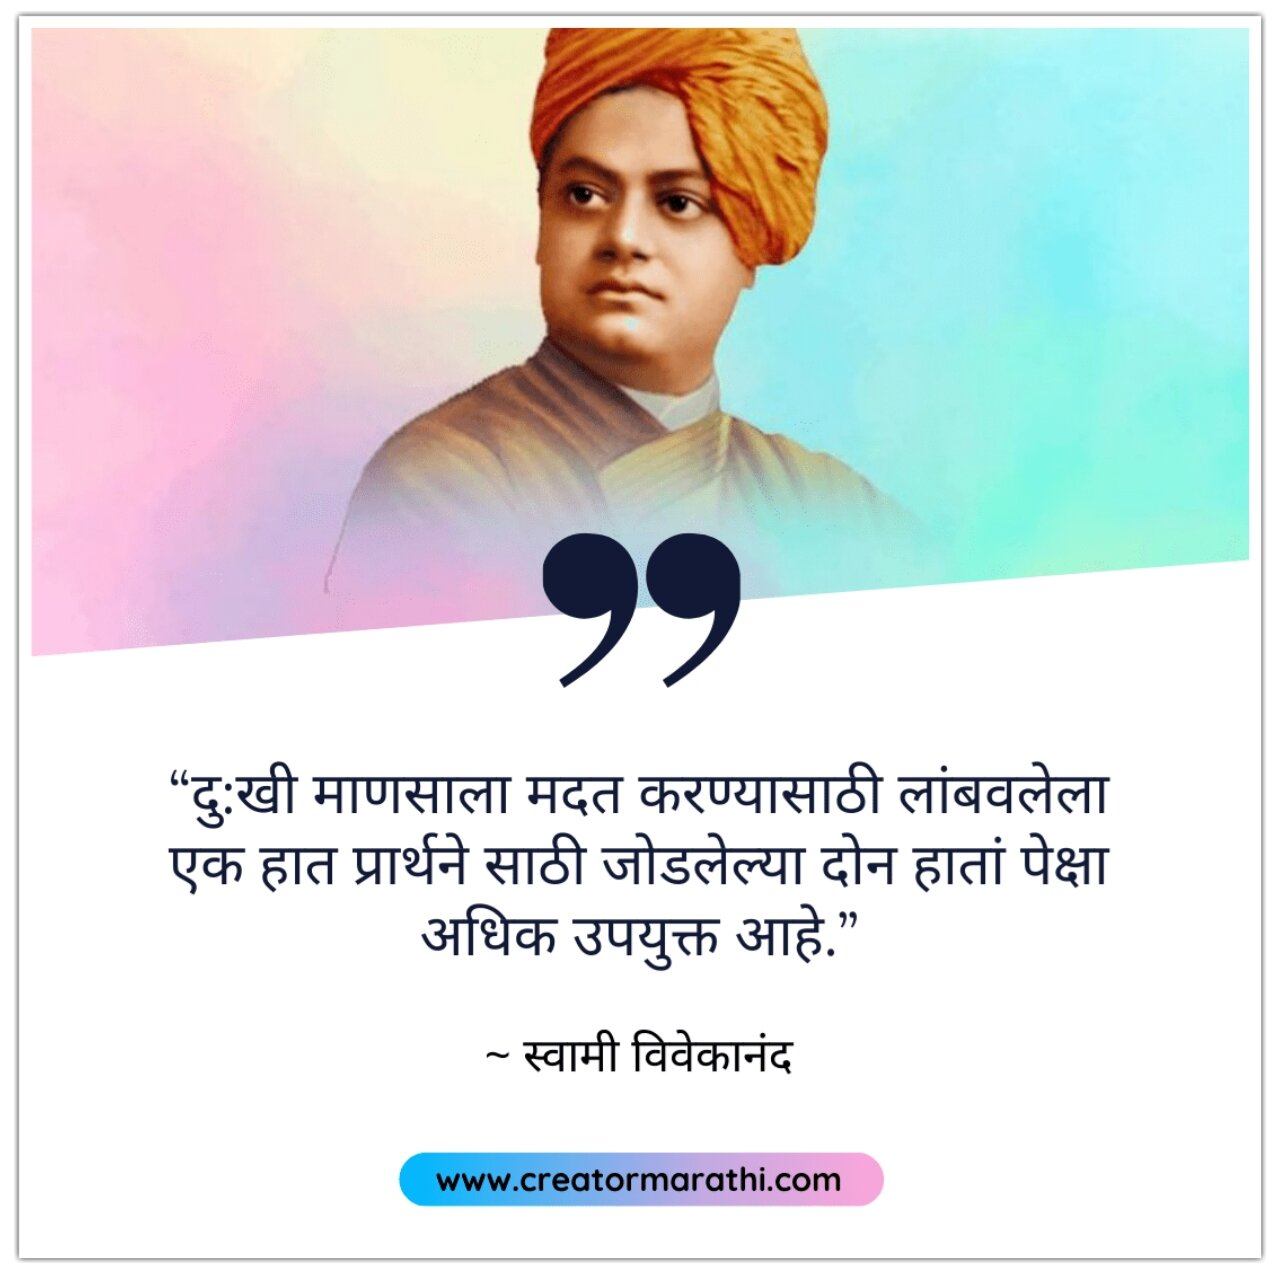 life changing quotes in marathi